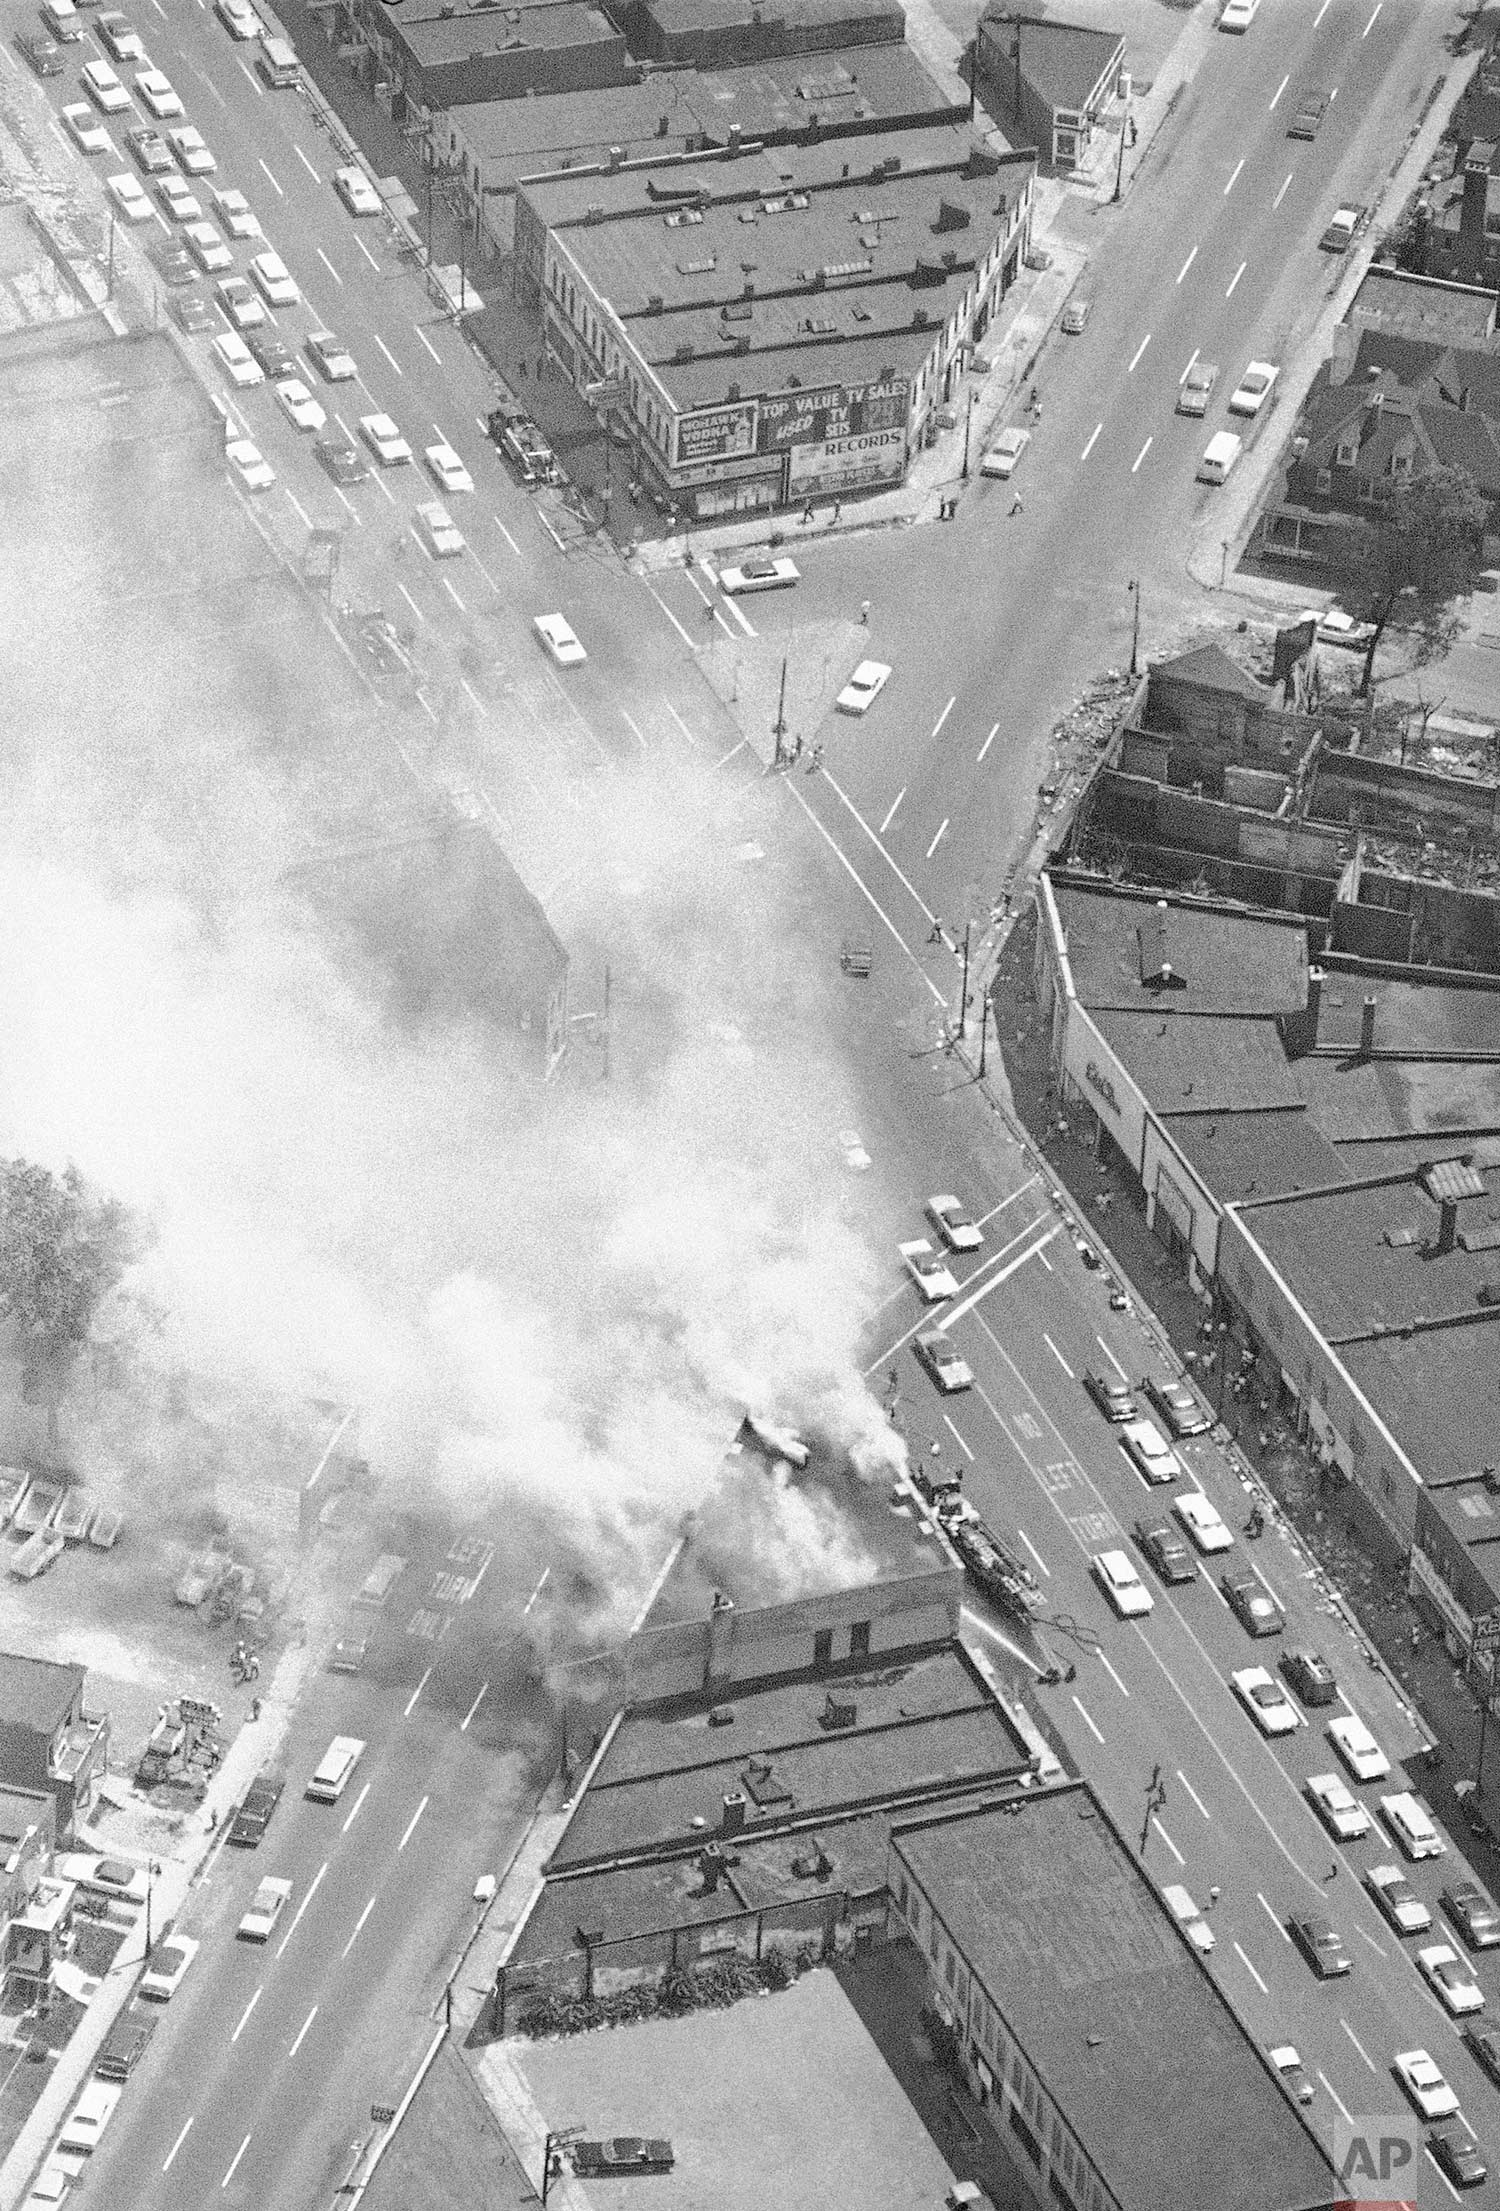 In this July 25, 1967 photo, smoke rises from a fire set at the busy intersection of Grand River and 14 Street in Detroit, near another burned out building. The fire was set despite patrols by the National Guard, police and Army troops. (AP Photo)